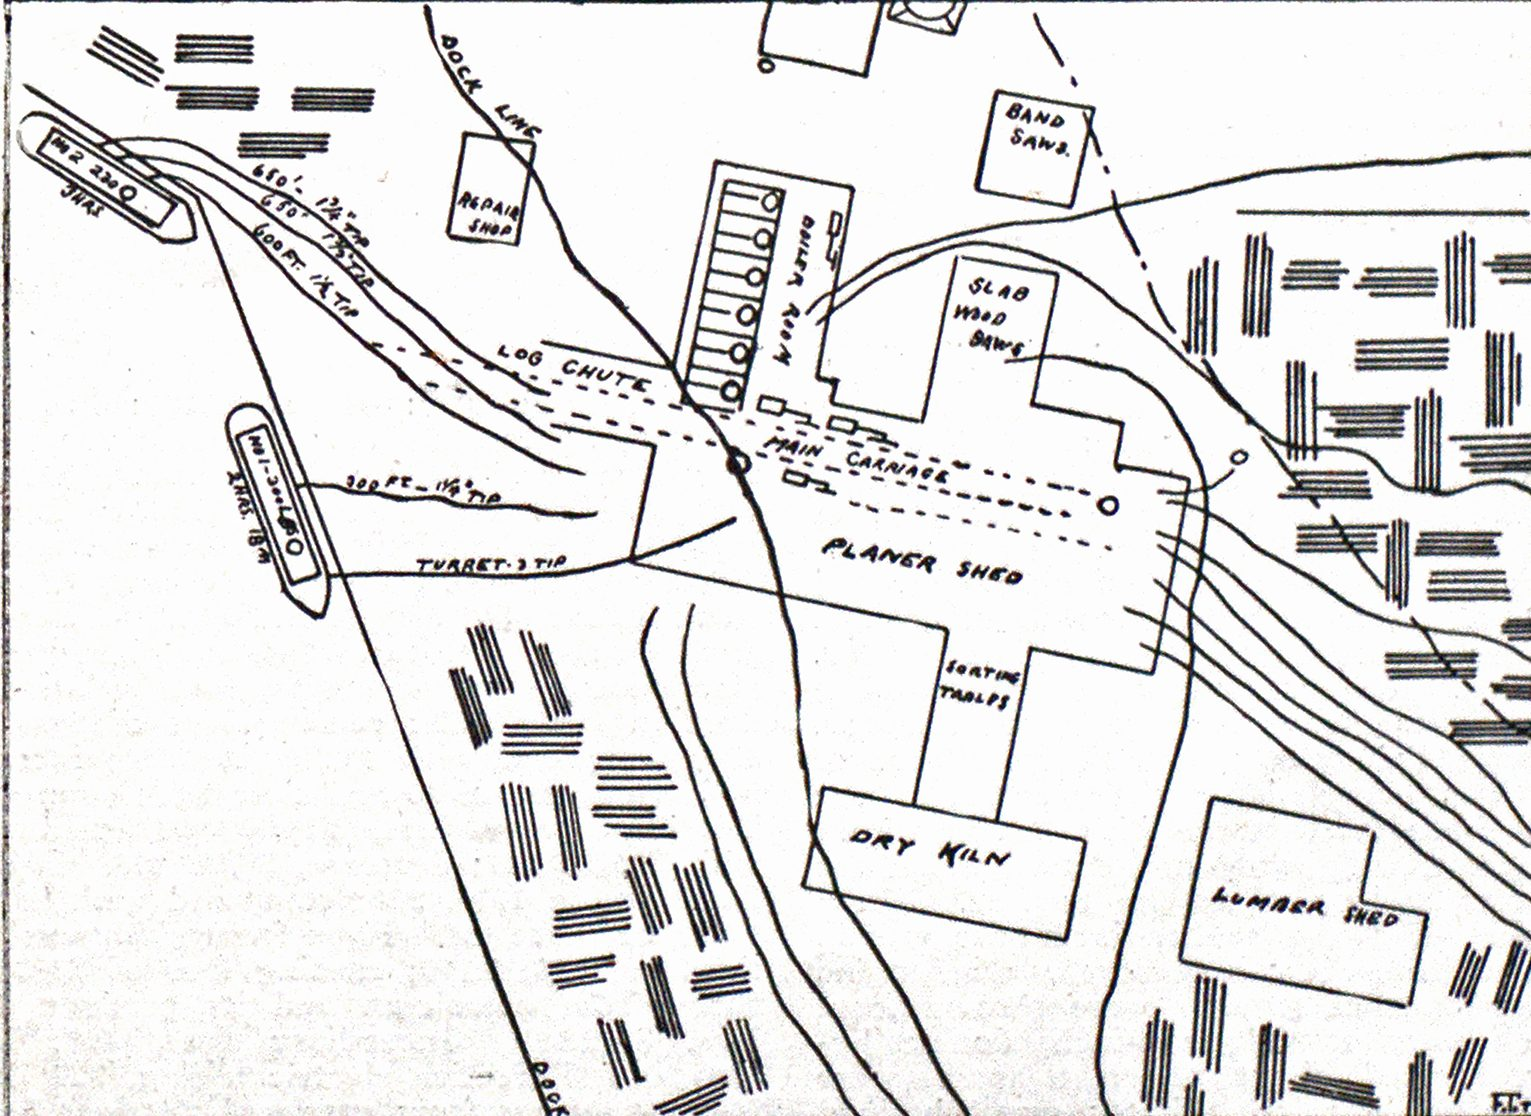 Diagram of Lumber Yard at Portland, Ore., Showing Location of Buildings.